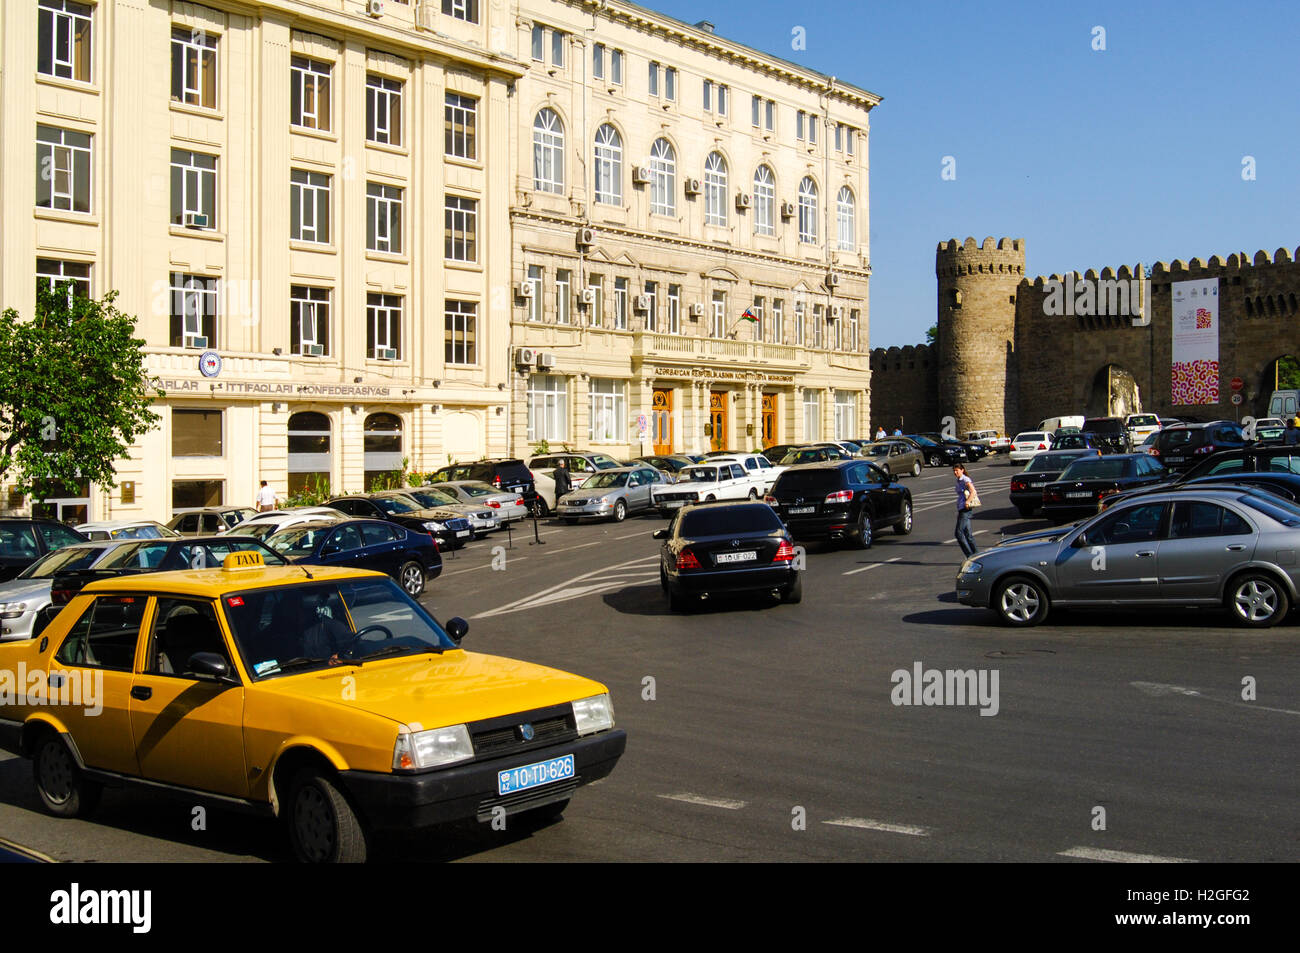 Azerbaijan, Baku. Traffic in Baku. Walls are surrounding the Old City or Inner City of Baku. This is the historical - Stock Image